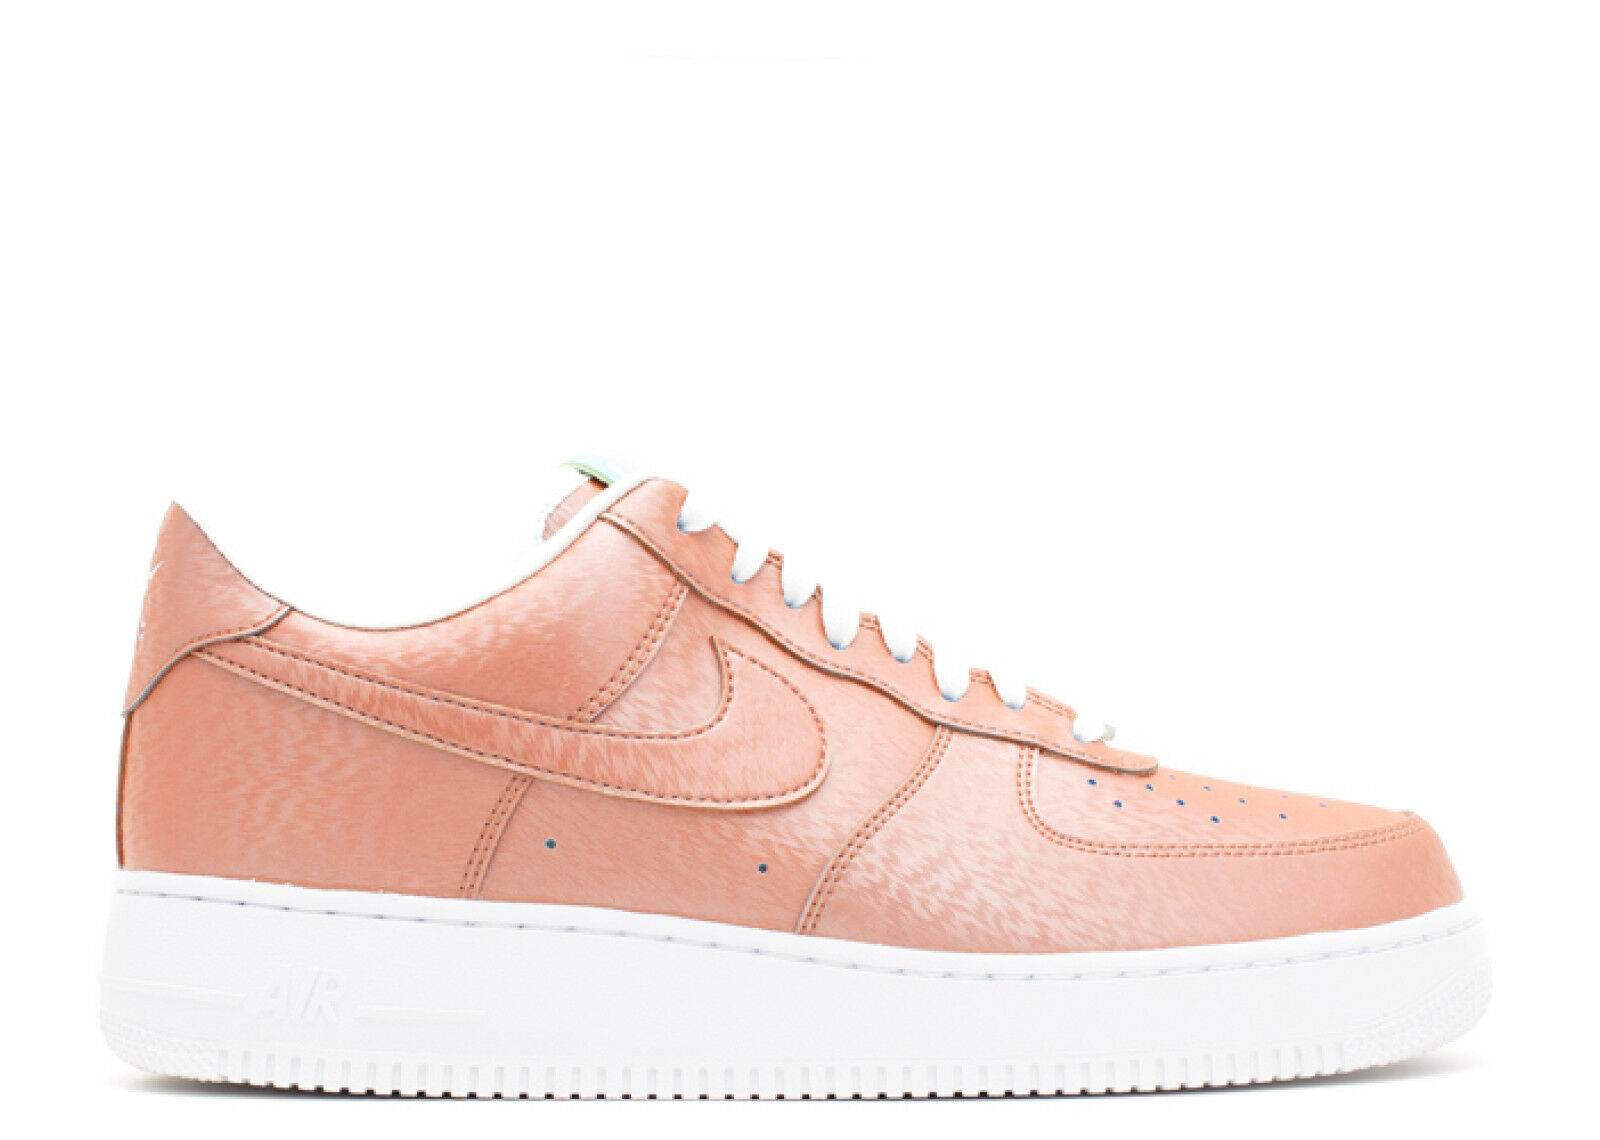 New Nike Air Force 1'07 LV8 QS in Rust Price reduction Seasonal clearance sale